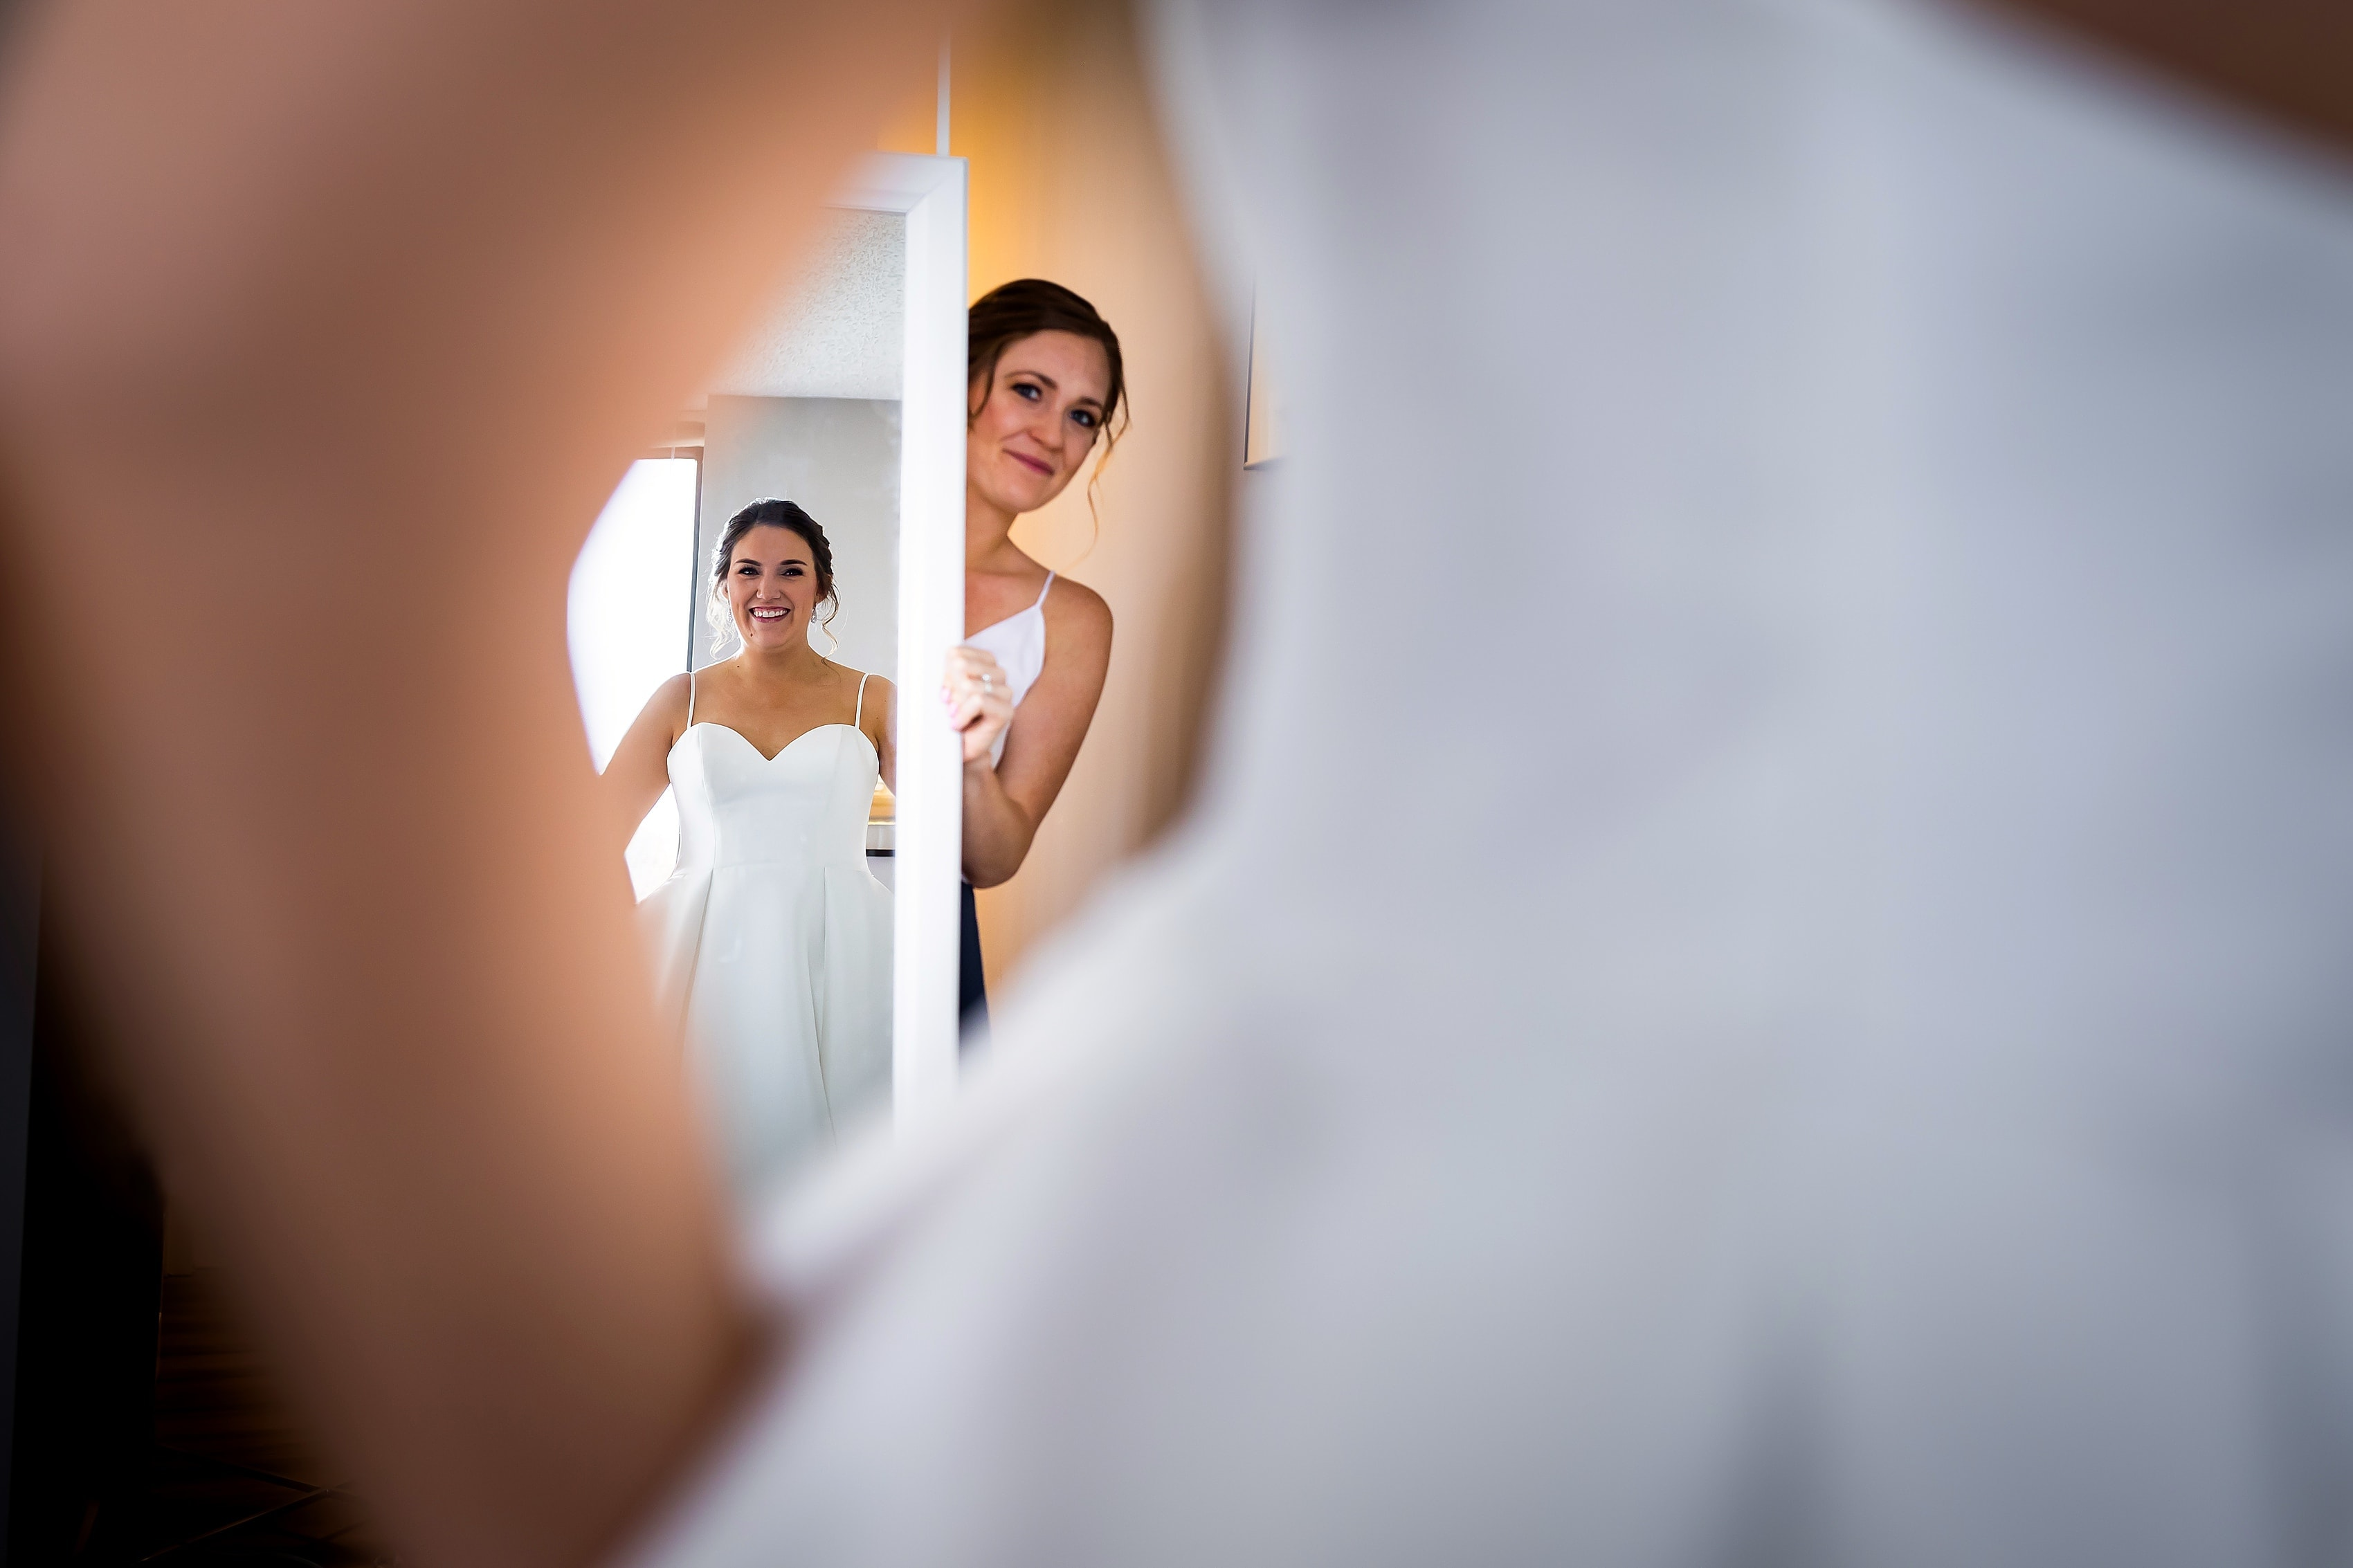 bride looks at herself in the mirror while getting ready for wedding